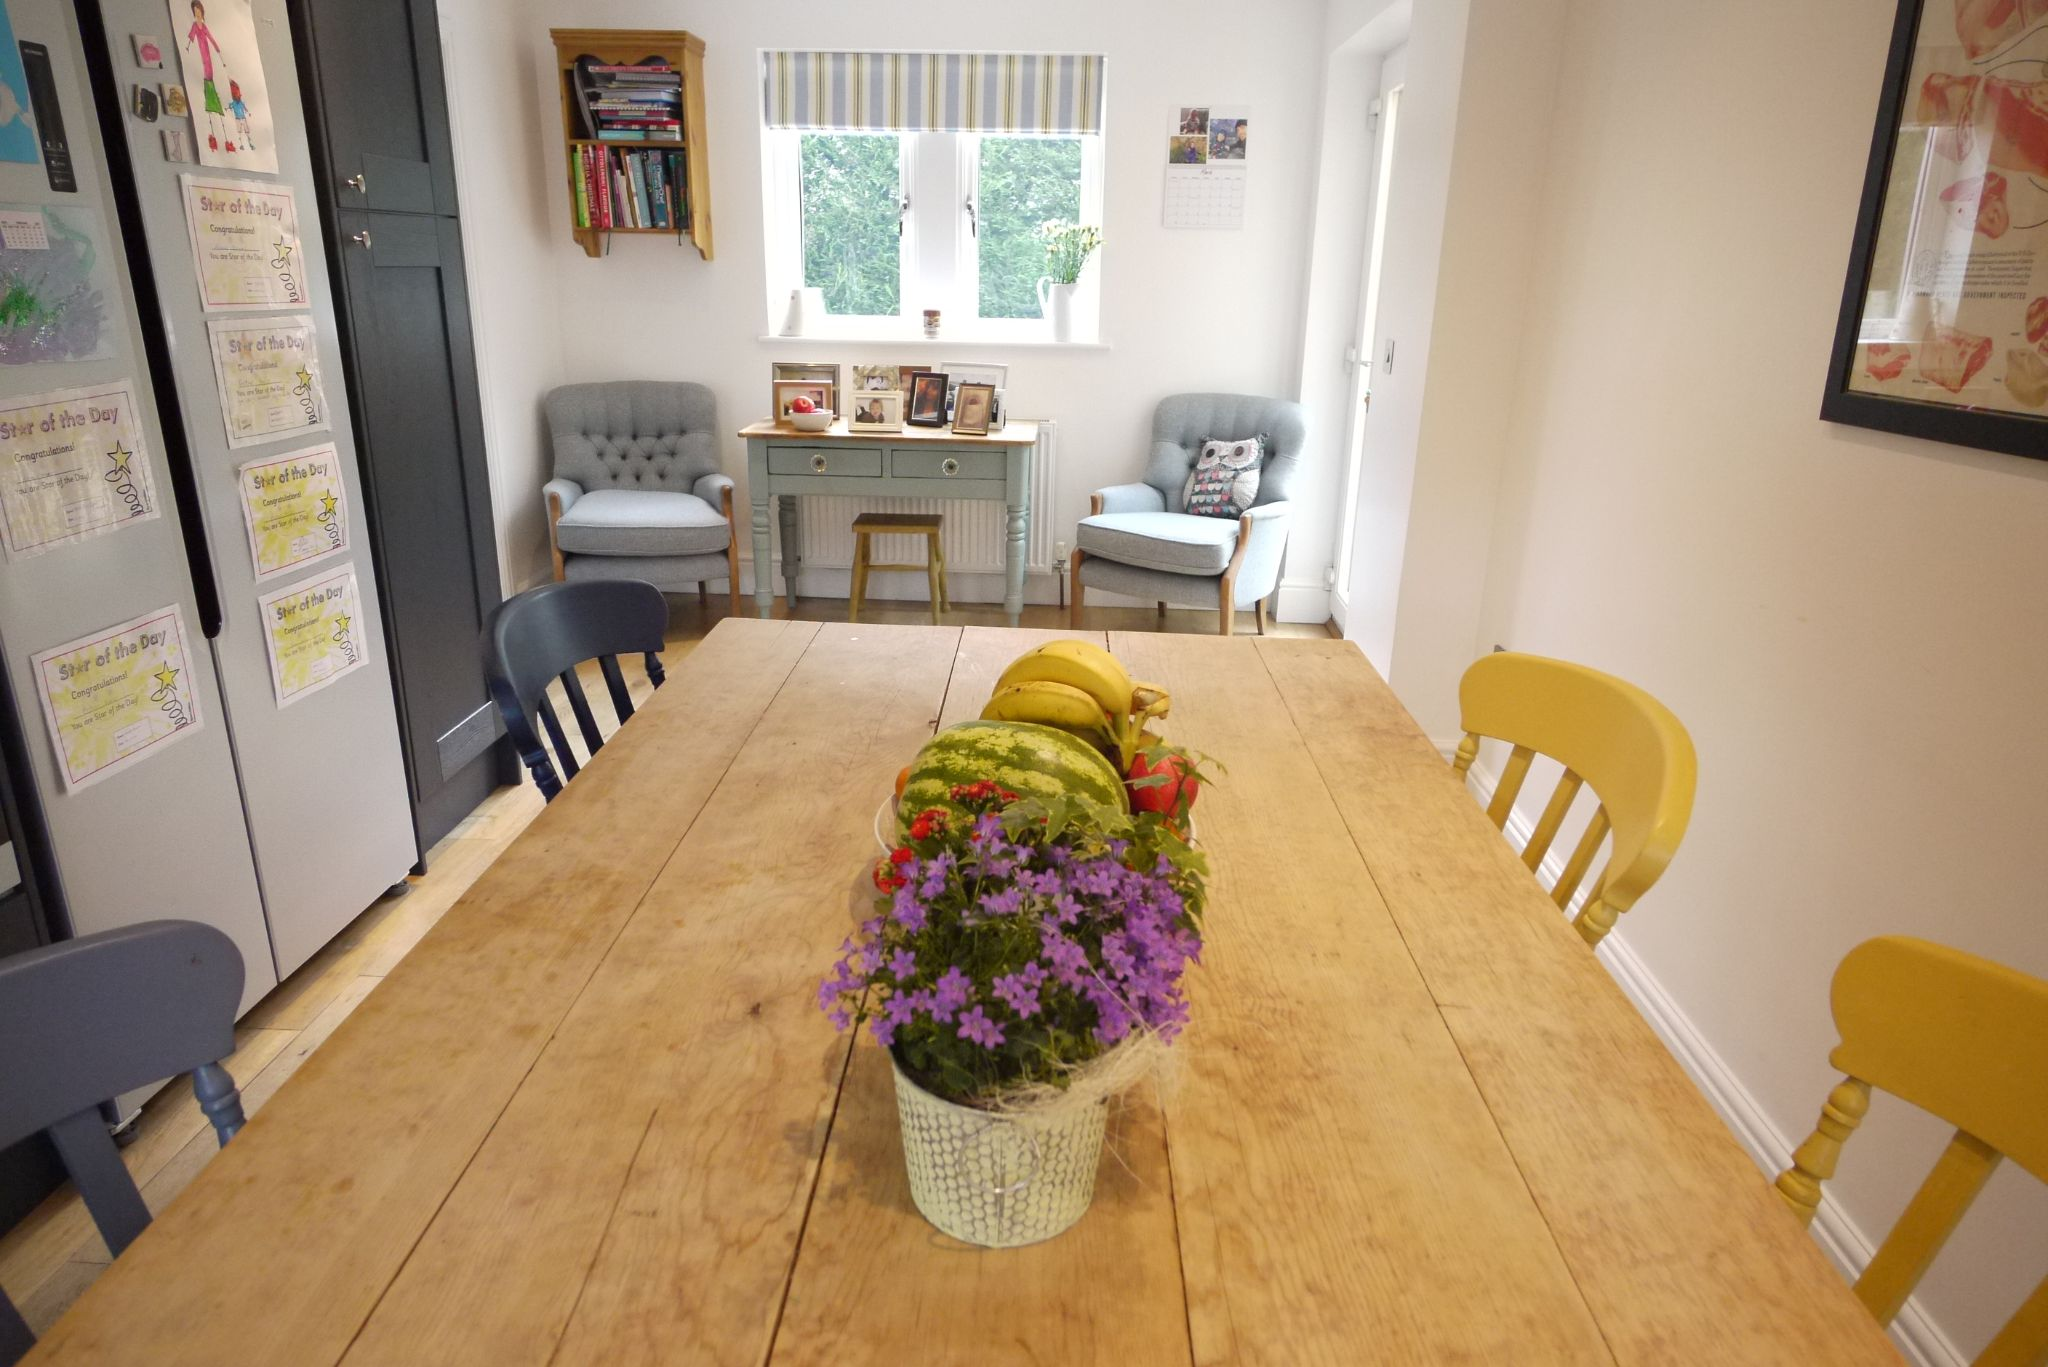 4 bedroom detached house For Sale in Brighouse - Photograph 5.